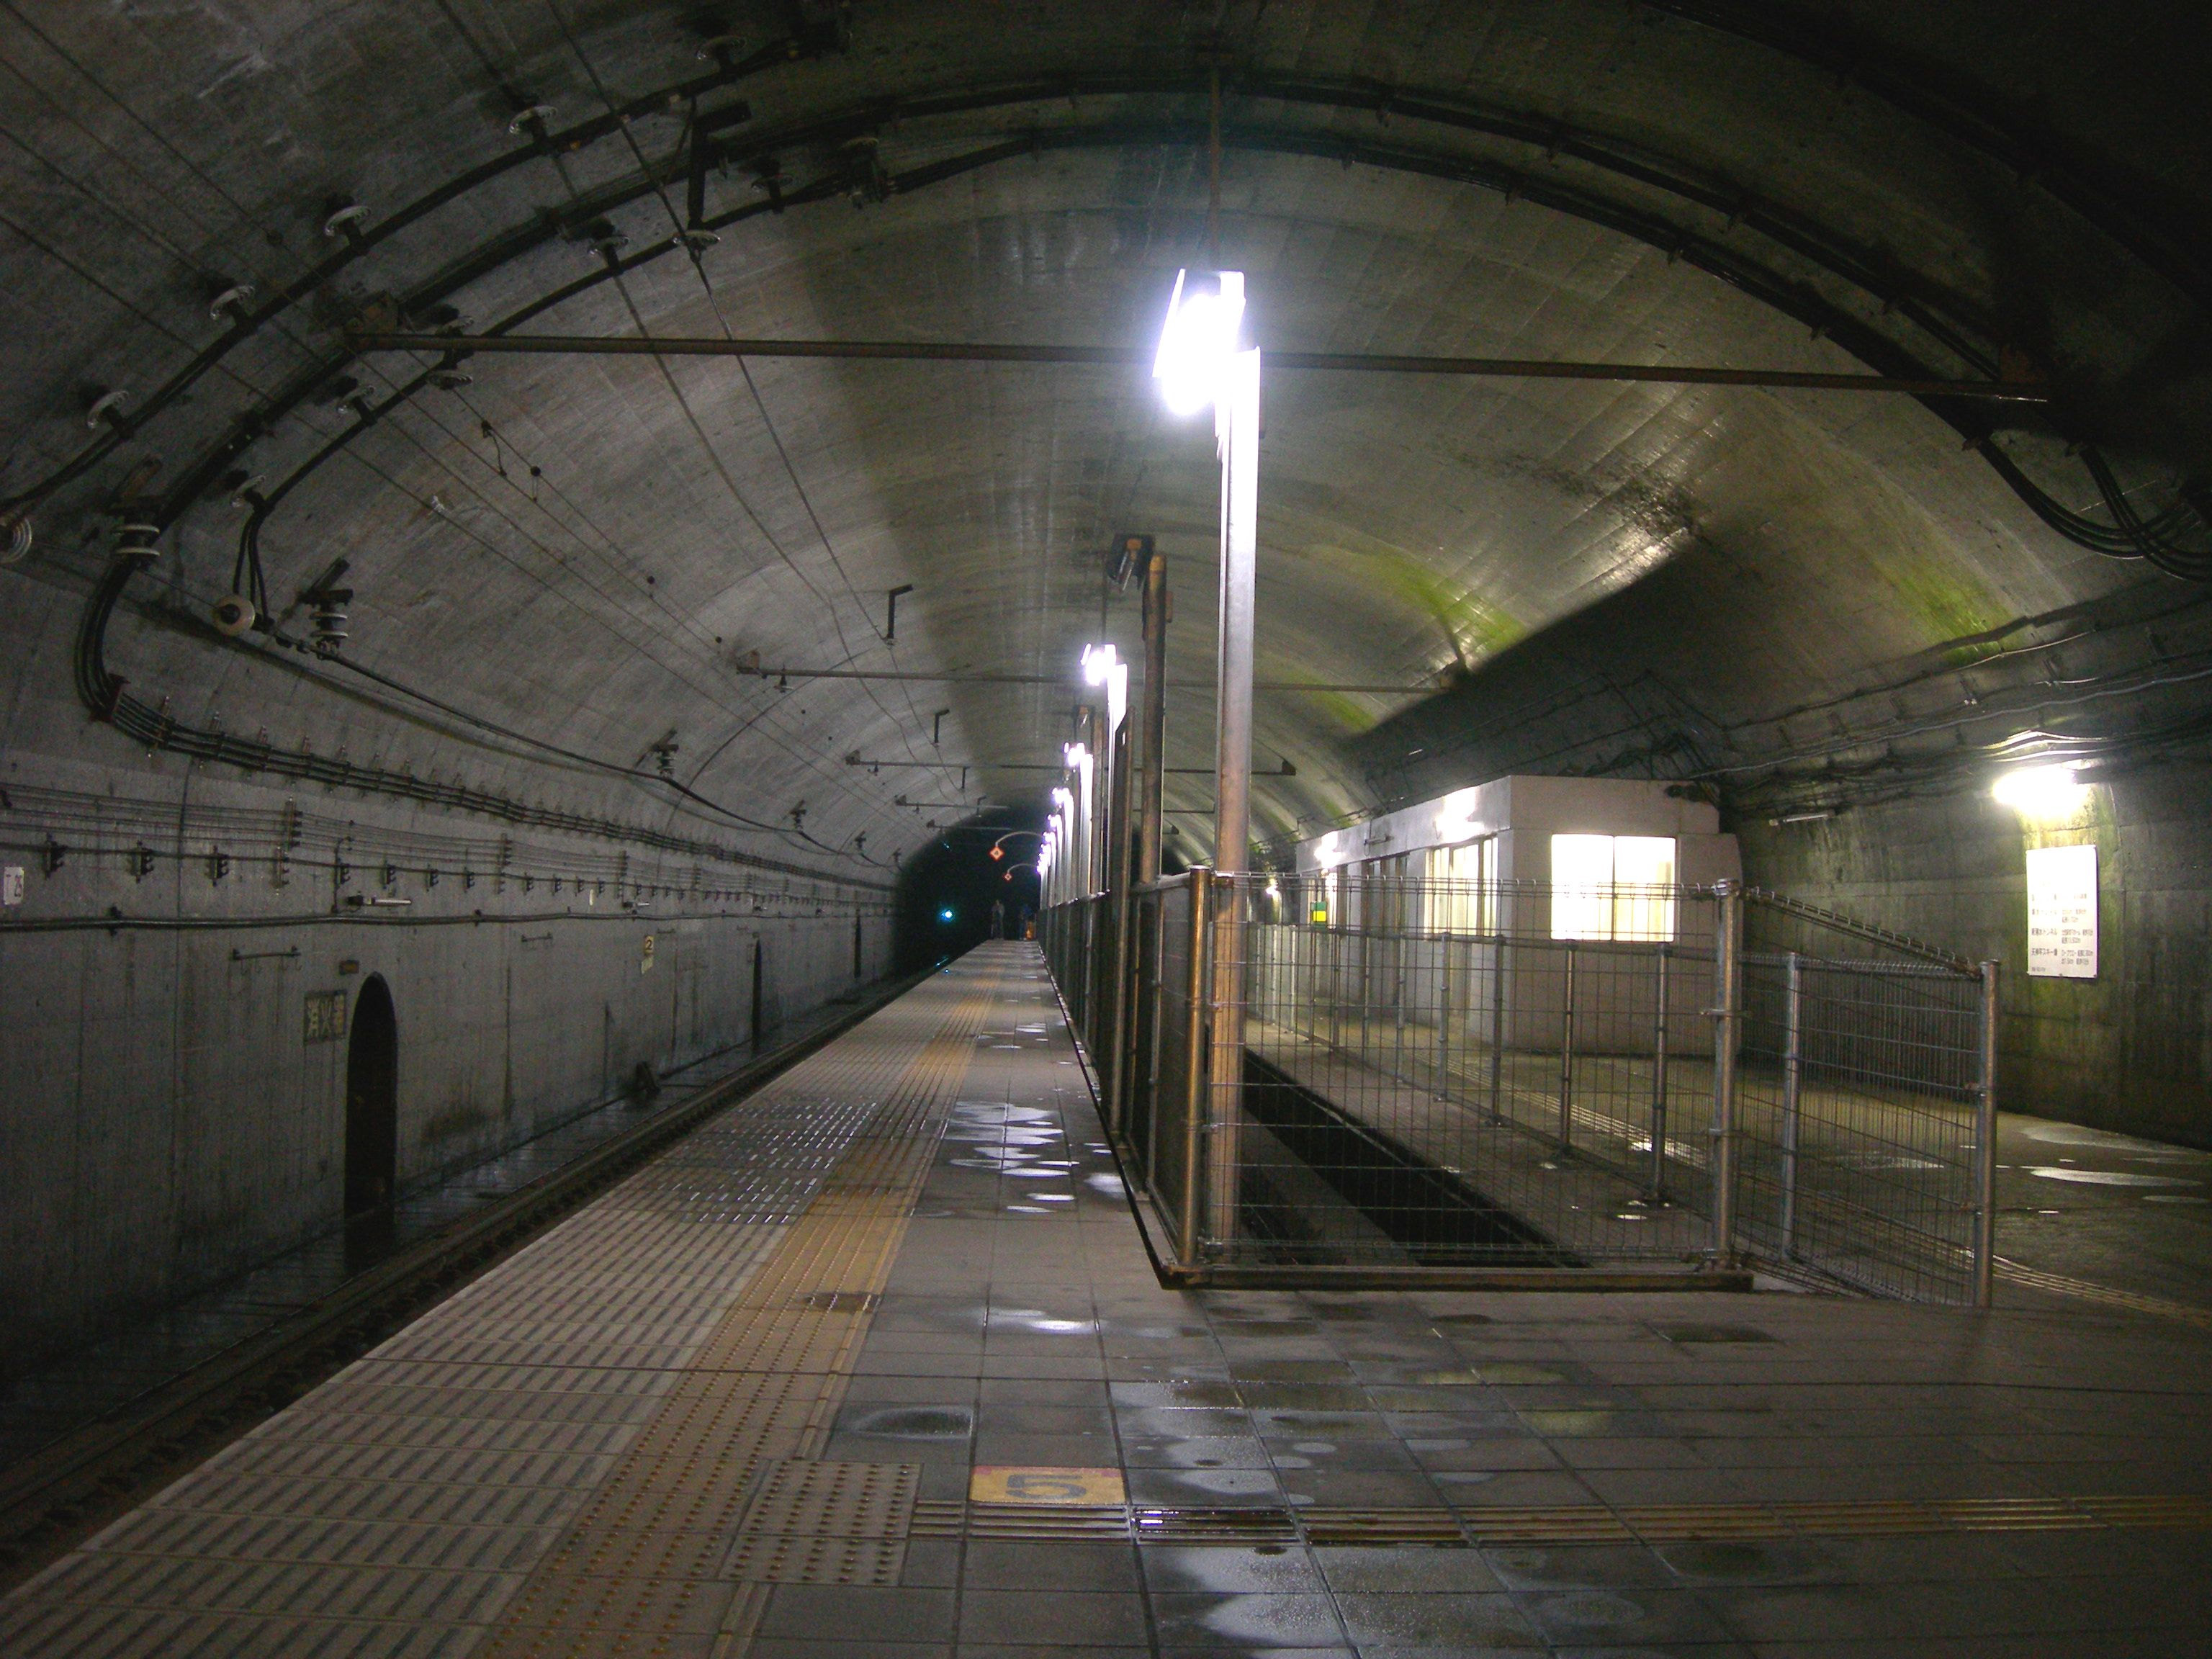 https://upload.wikimedia.org/wikipedia/commons/3/3b/Doai-Station-Platform_for_Nagaoka.jpg